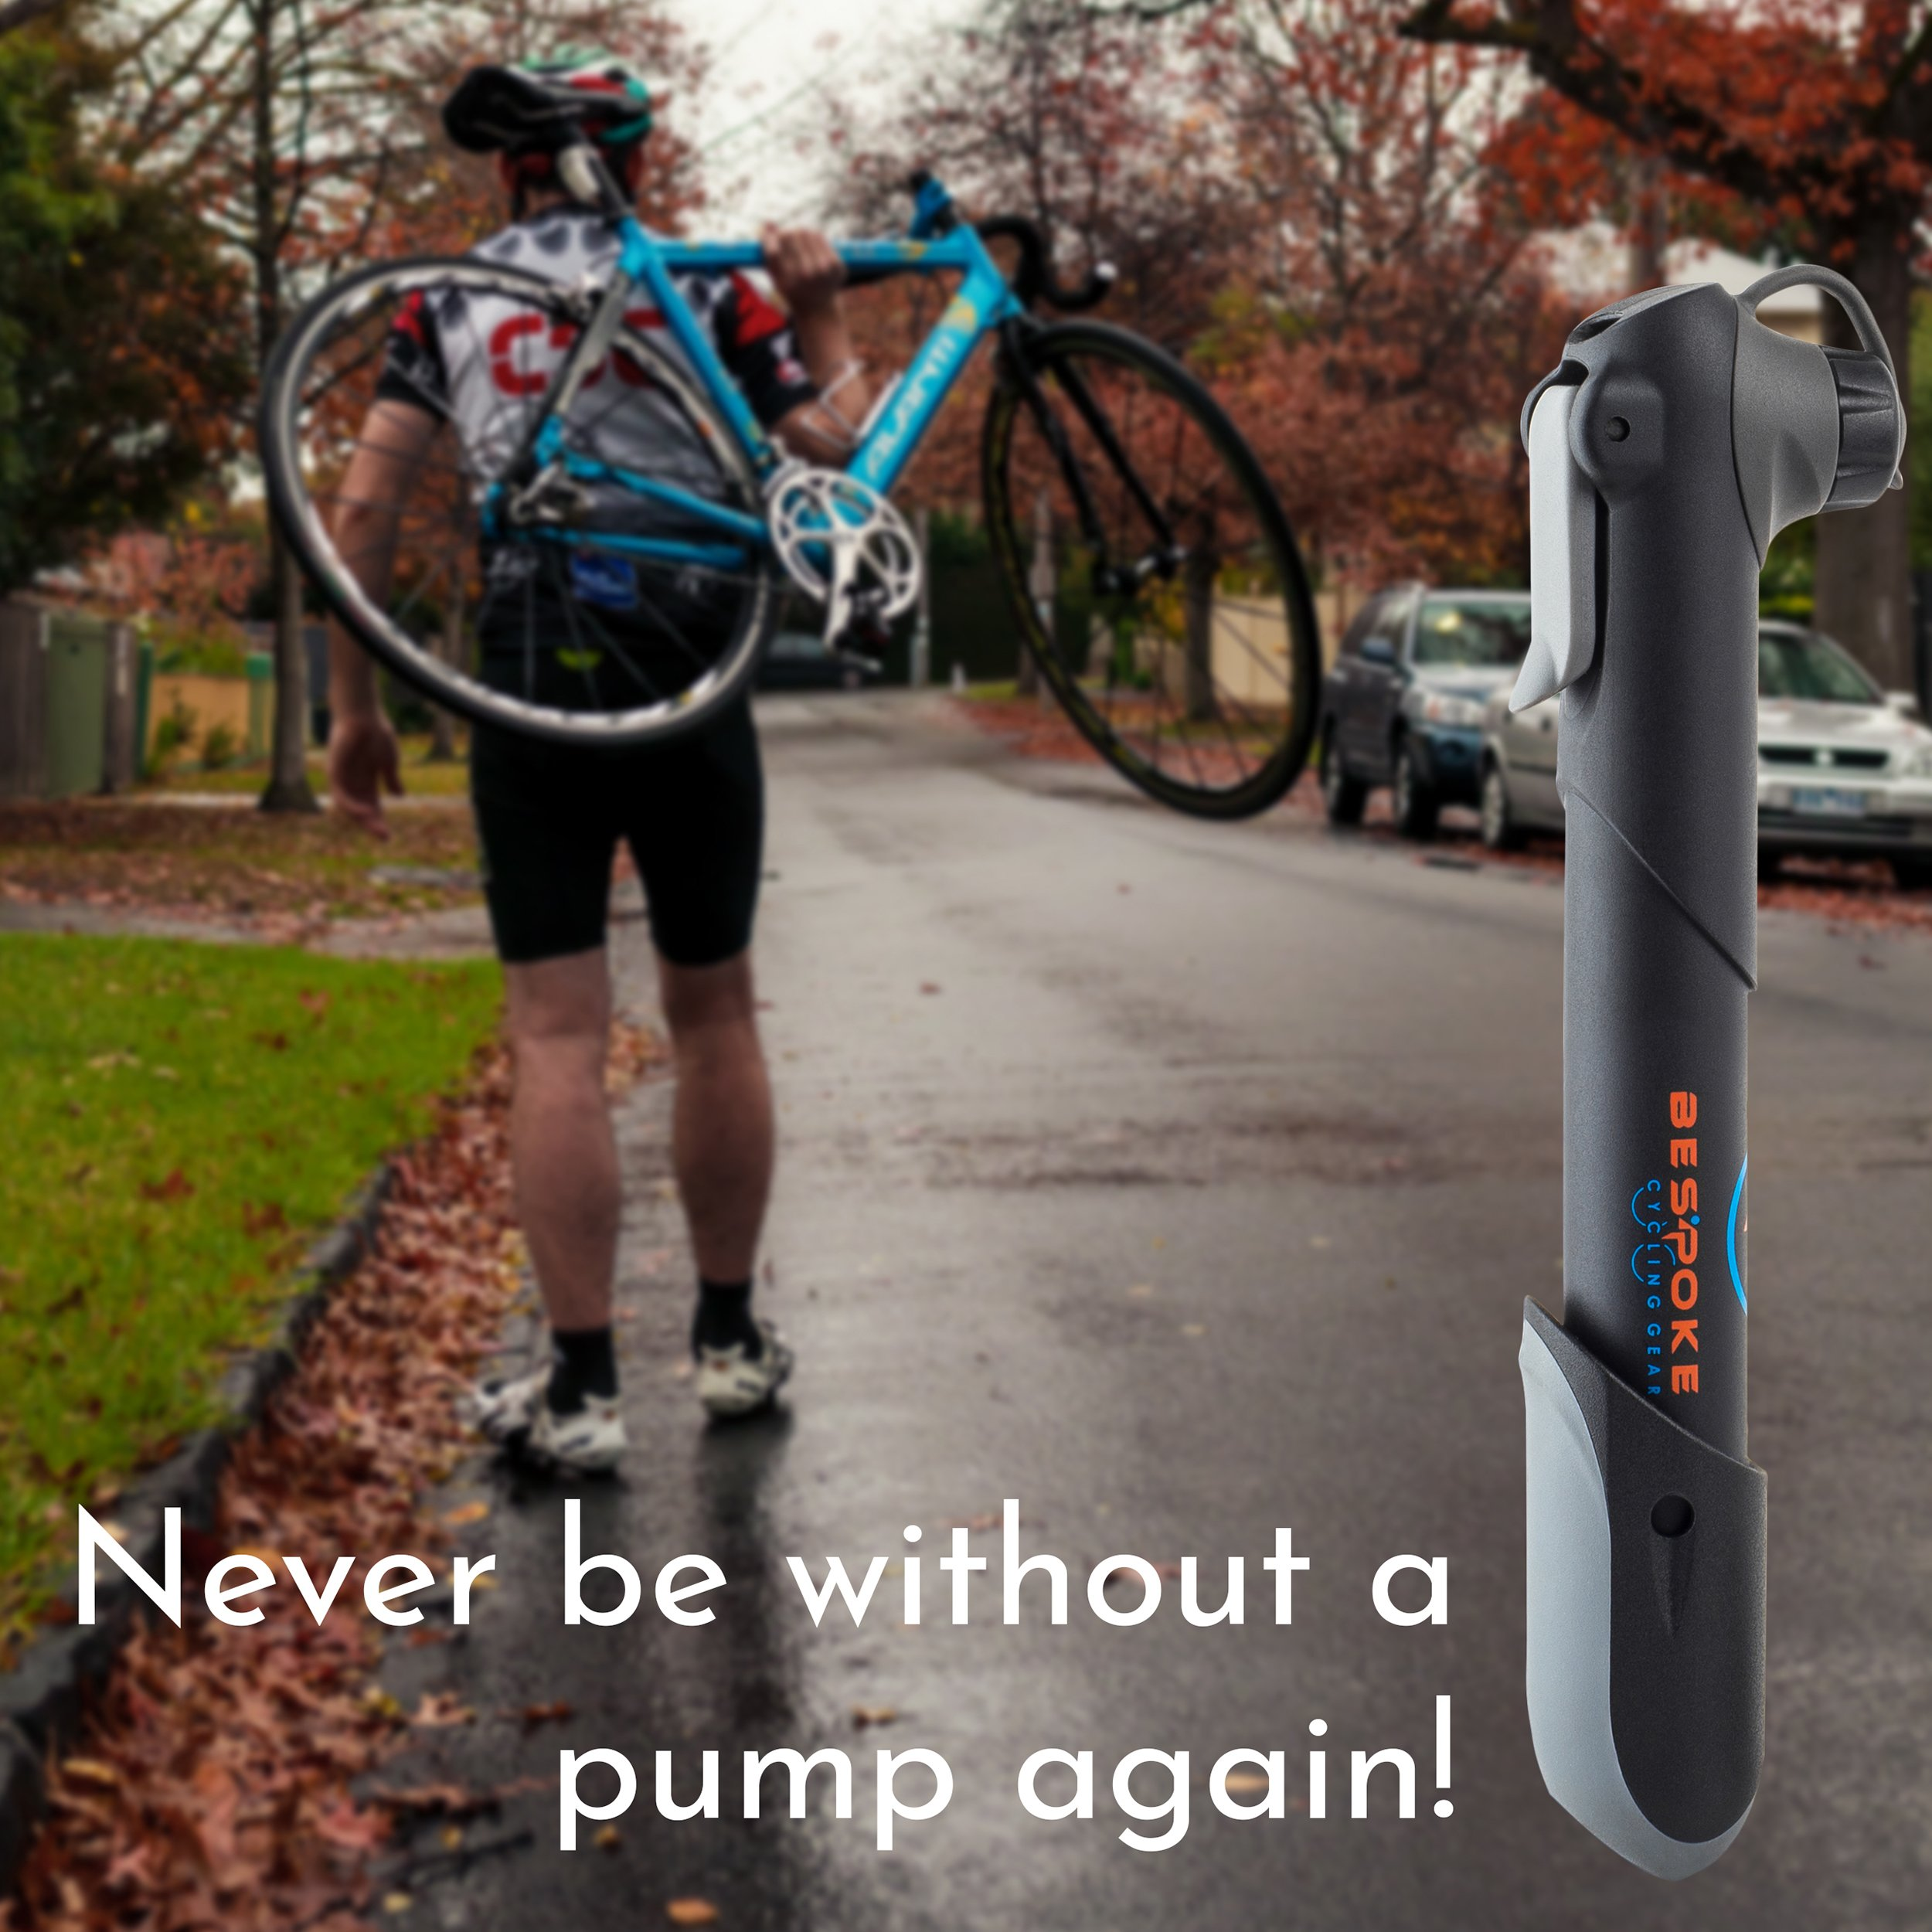 BeSpoke Cycling Gear Mini Bike Pump & tire repair kit - dual nozzle fits Presta & Schrader valves - compact & lightweight - frame-mounted bracket - pumps road, mountain, dirt & BMX bicycle tire tubes by BeSpoke Cycling Gear (Image #7)